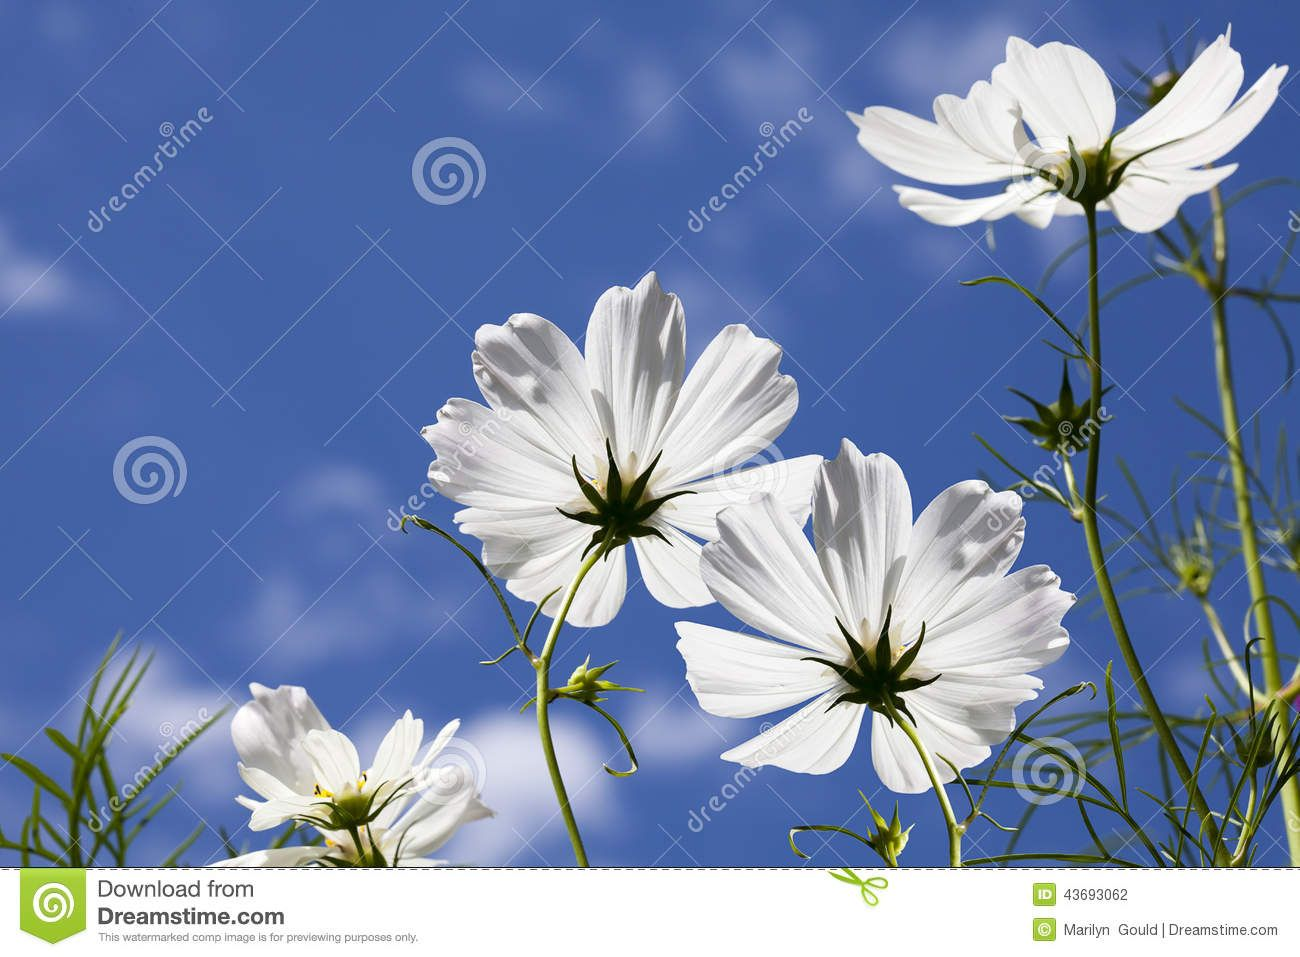 White Cosmos Flowers Blue Sky Download From Over 39 Million High